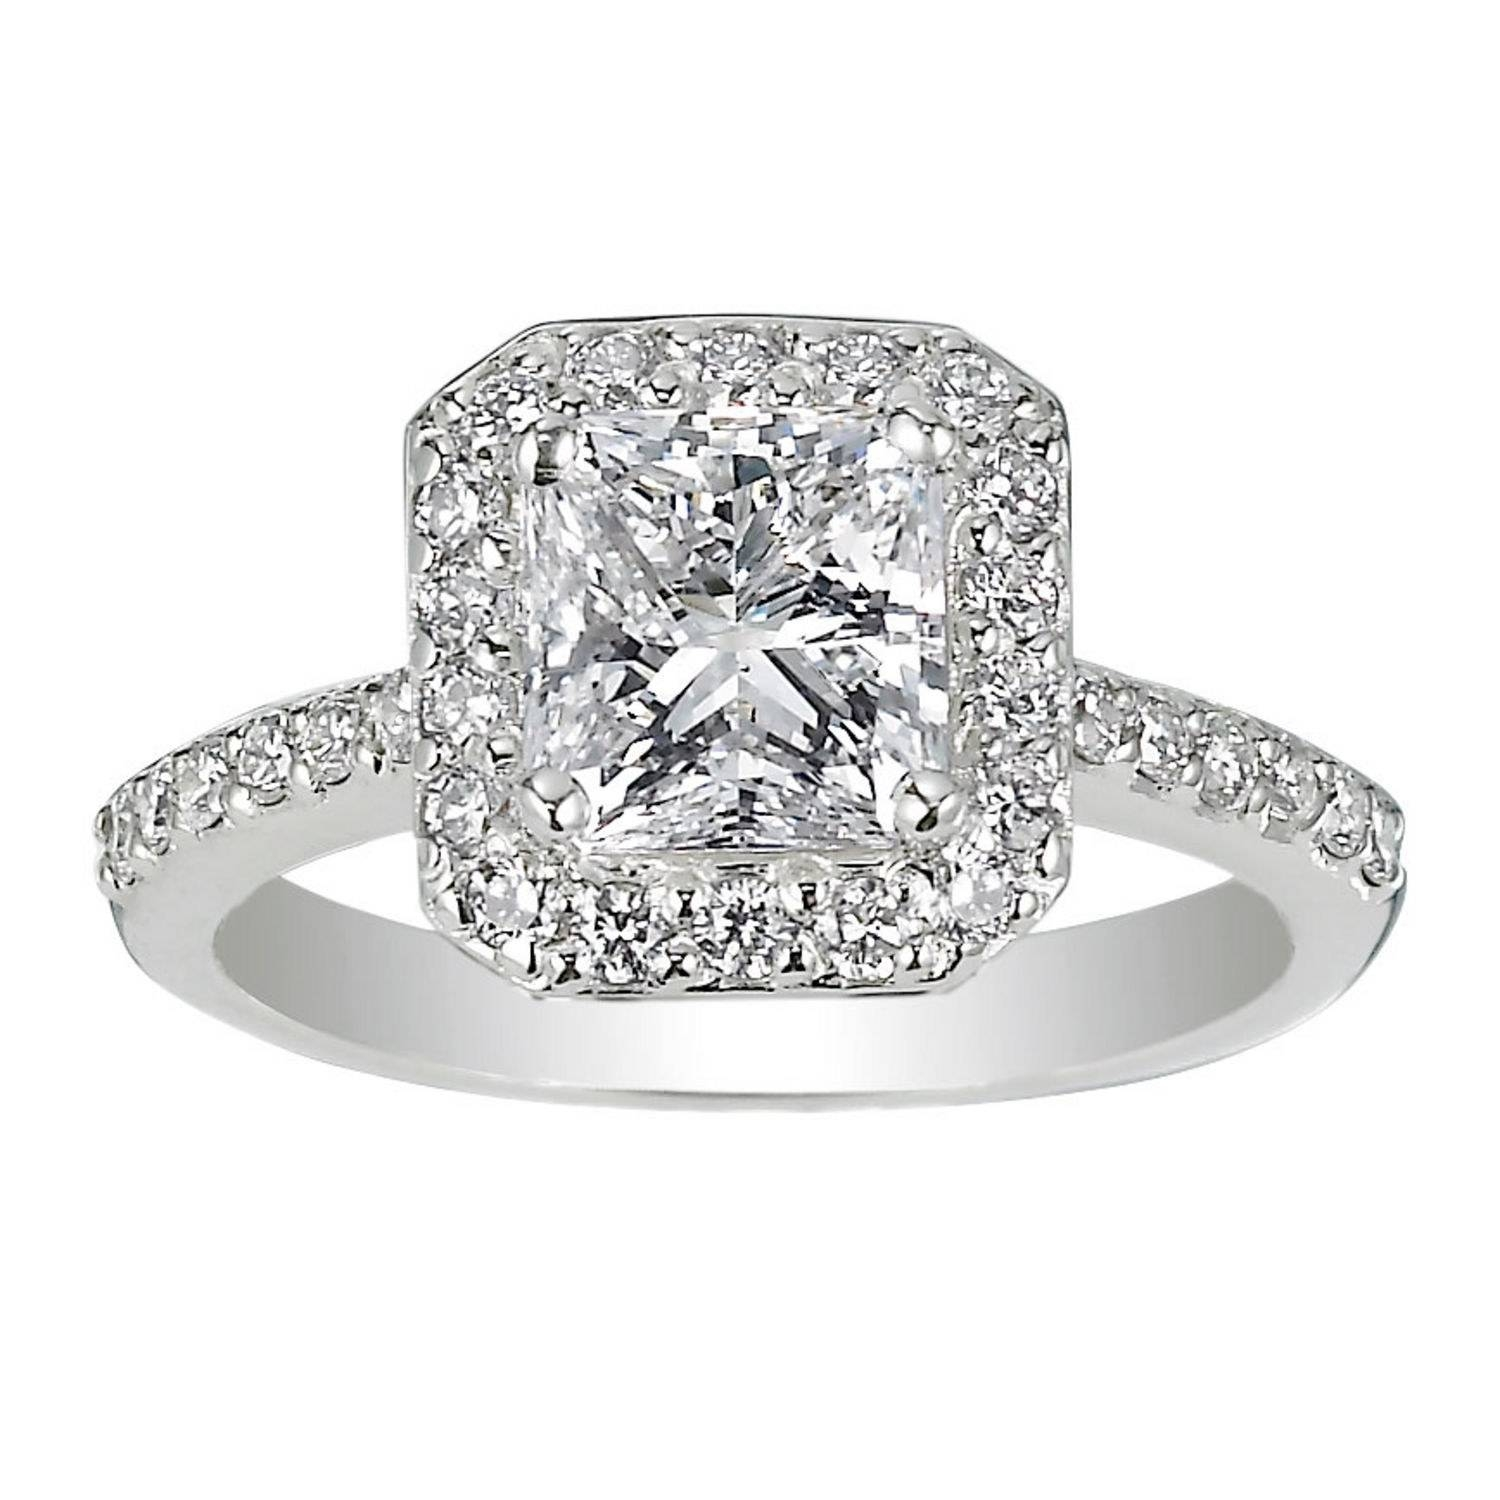 62 Diamond Engagement Rings Under $5,000 | Glamour Throughout Women Diamond Wedding Rings (Gallery 7 of 15)